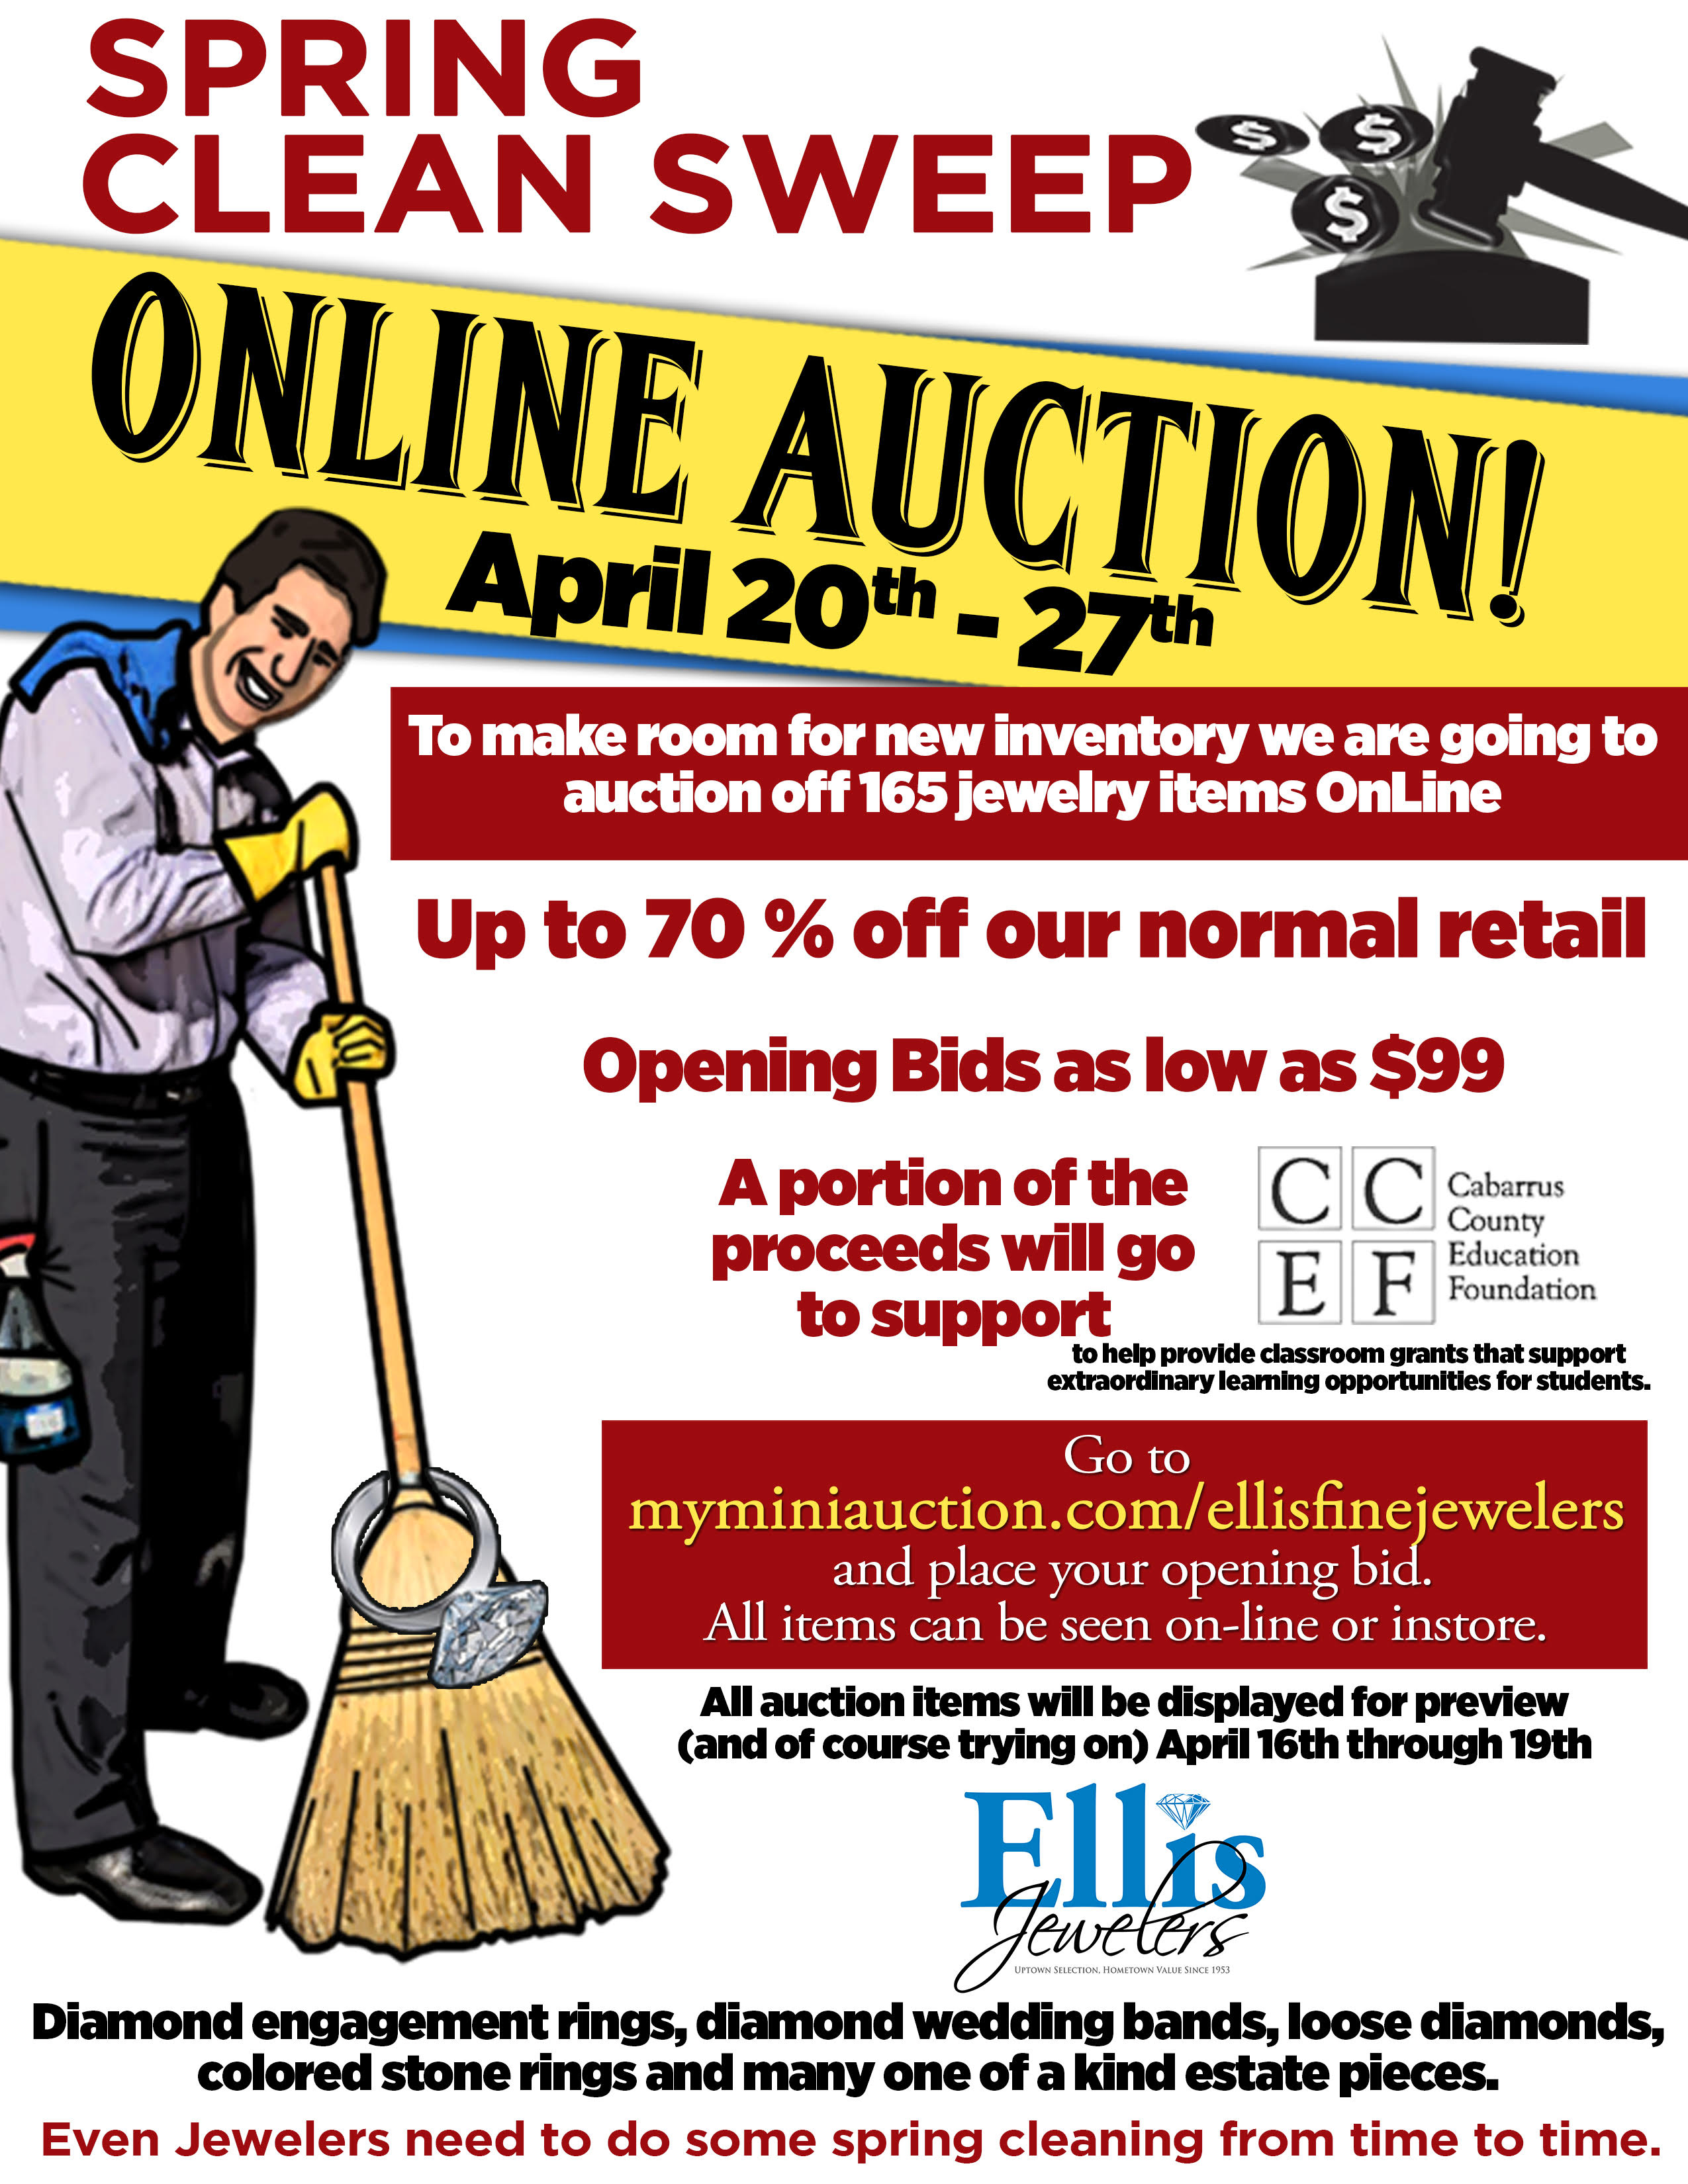 Ellis Jewelers is Cleaning House to Benefit CCEF